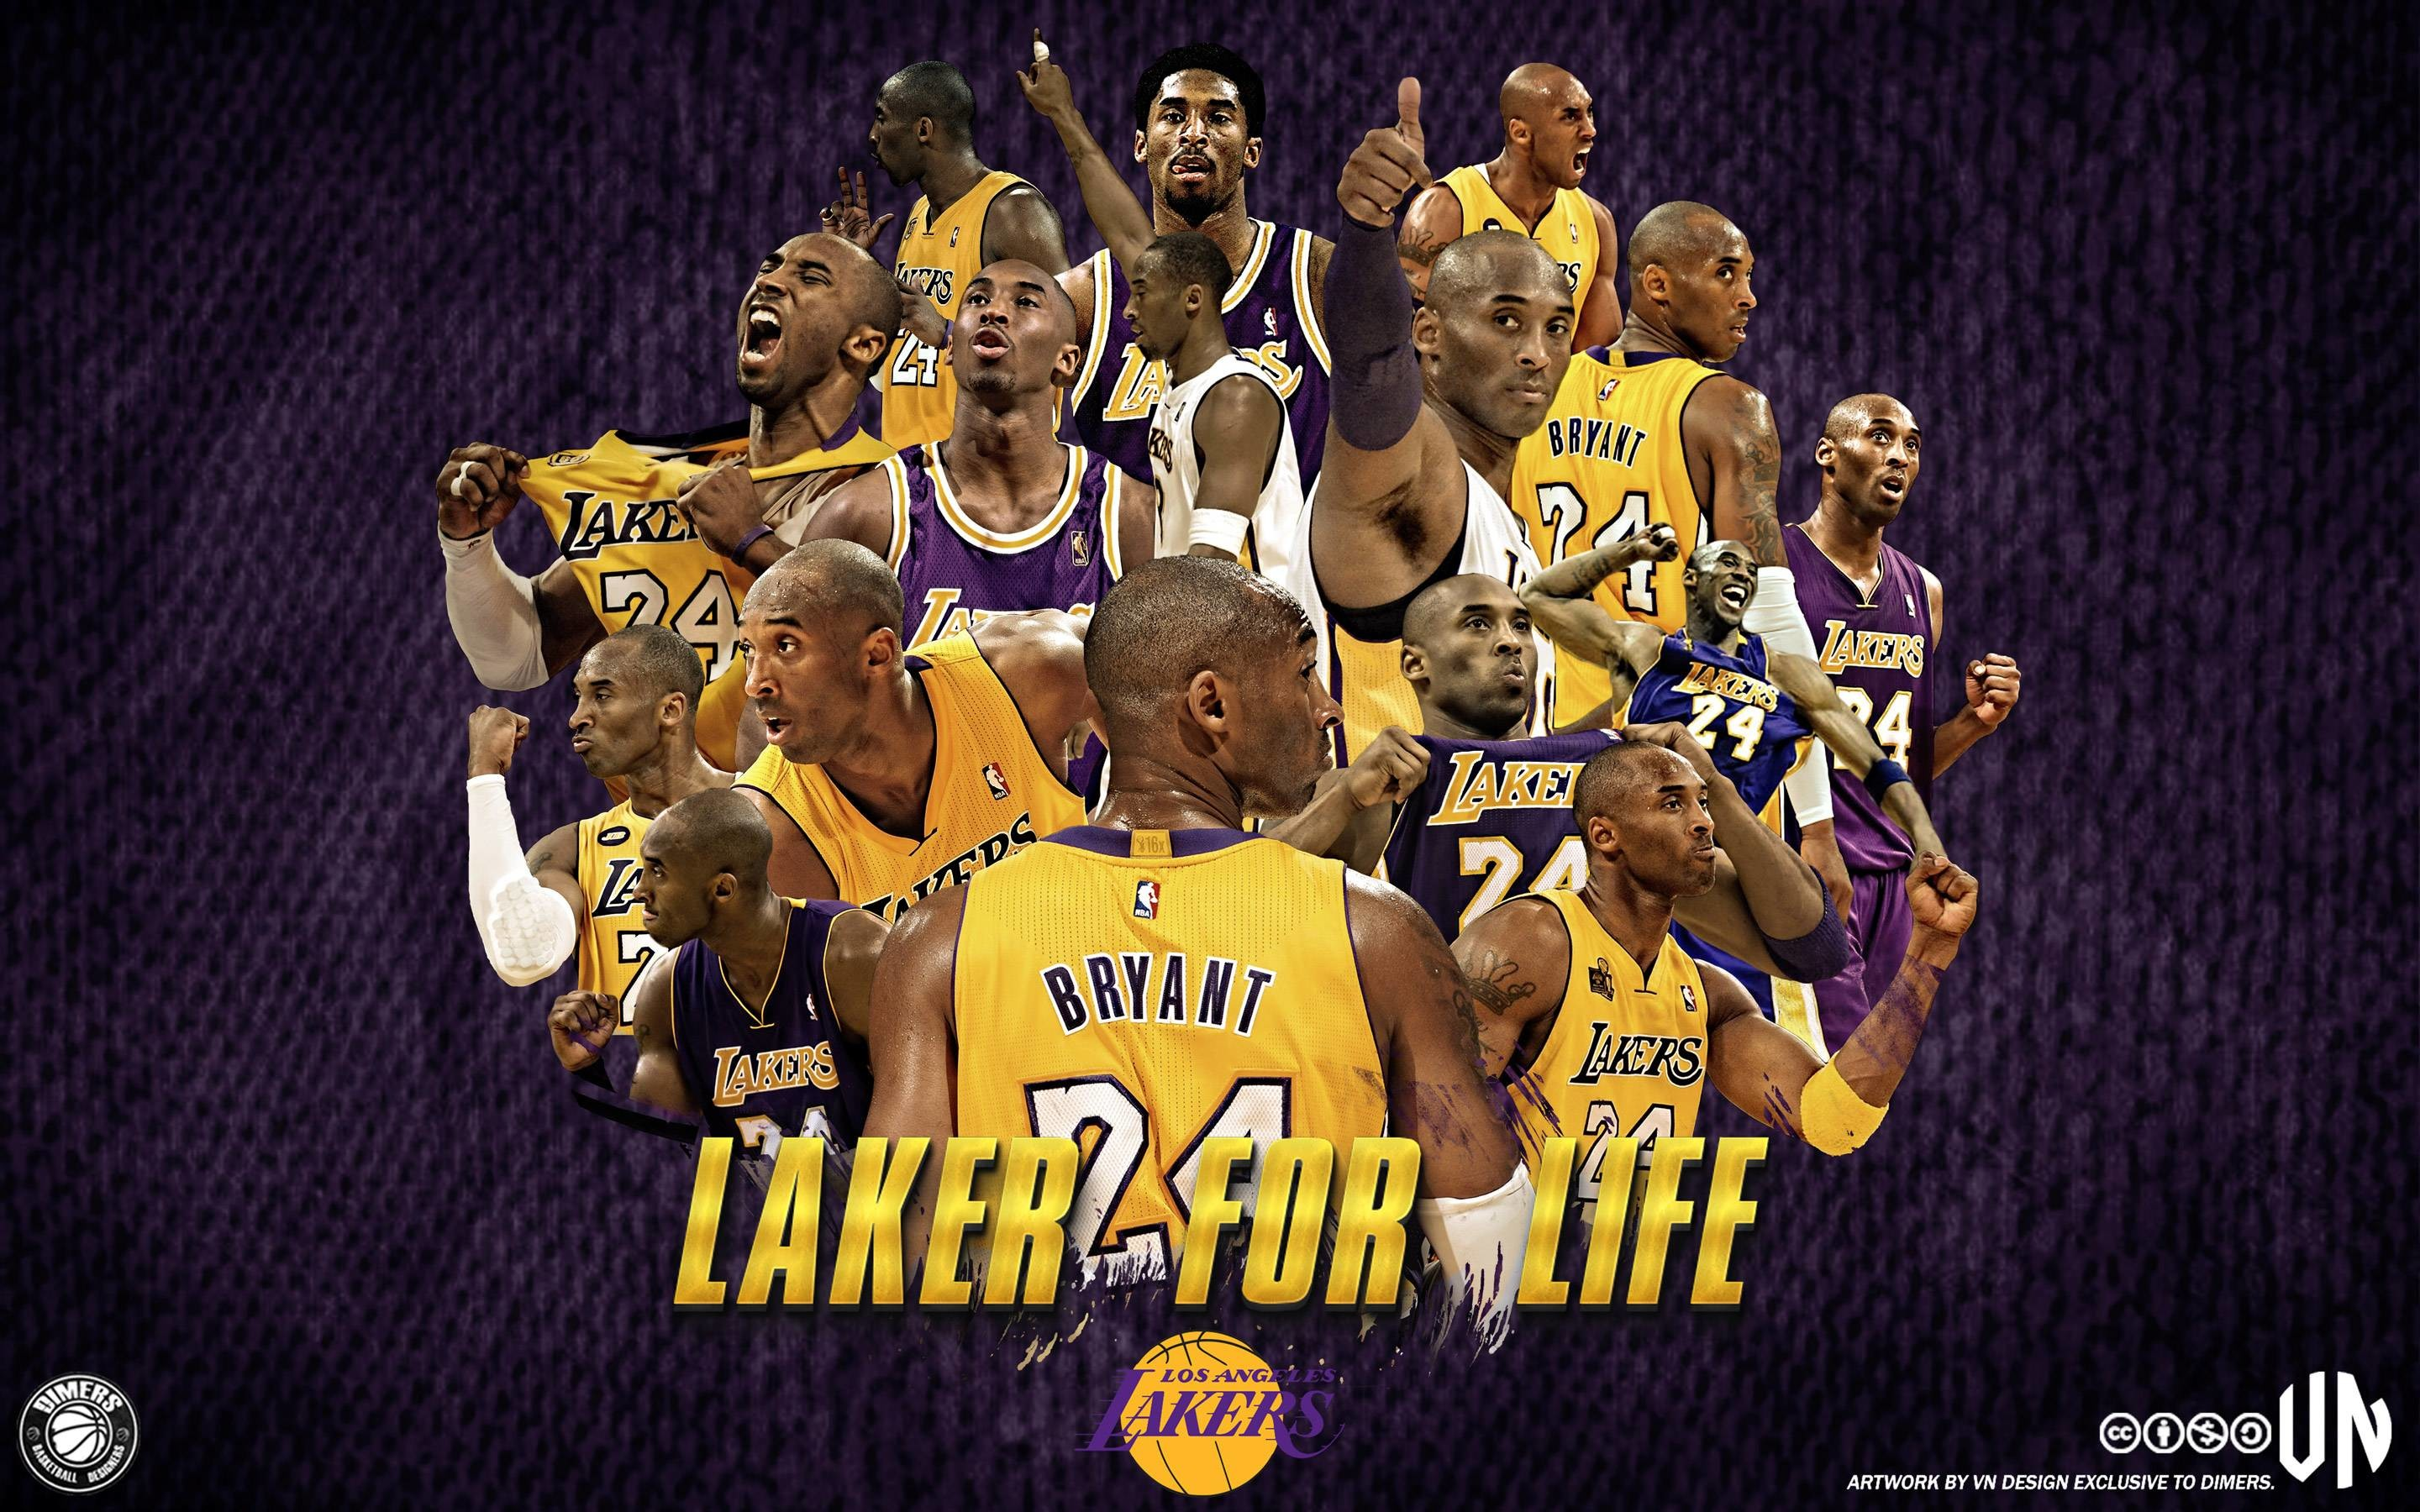 cool basketball wallpaper images (71+ images)